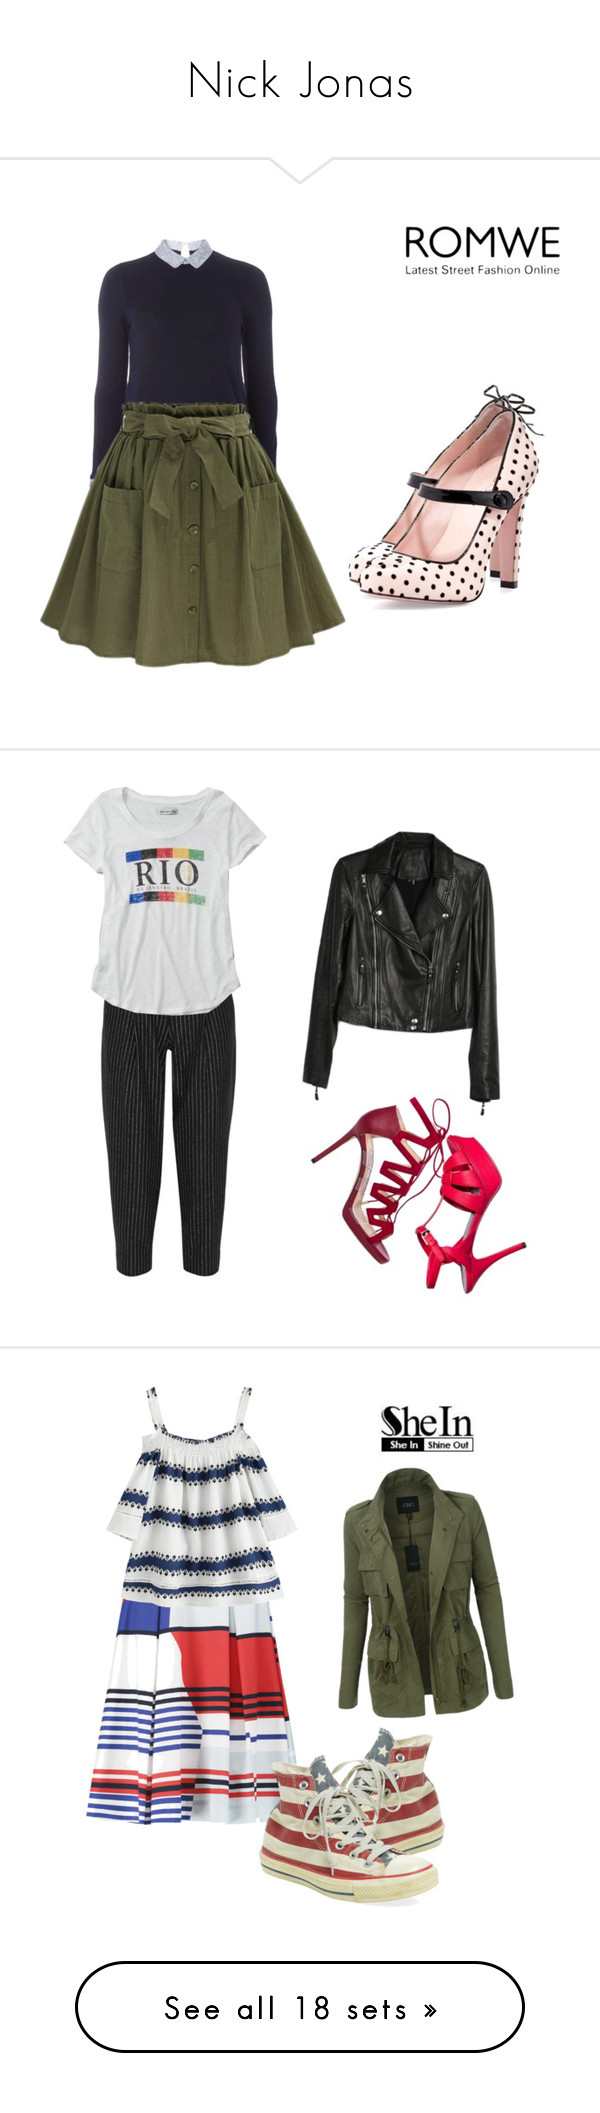 """""""Nick Jonas"""" by lady-shadylady ❤ liked on Polyvore featuring beauty, Dorothy Perkins, RED Valentino, Jimmy Choo, Yves Saint Laurent, DKNY, Abercrombie & Fitch, Paige Denim, LE3NO and Milly"""